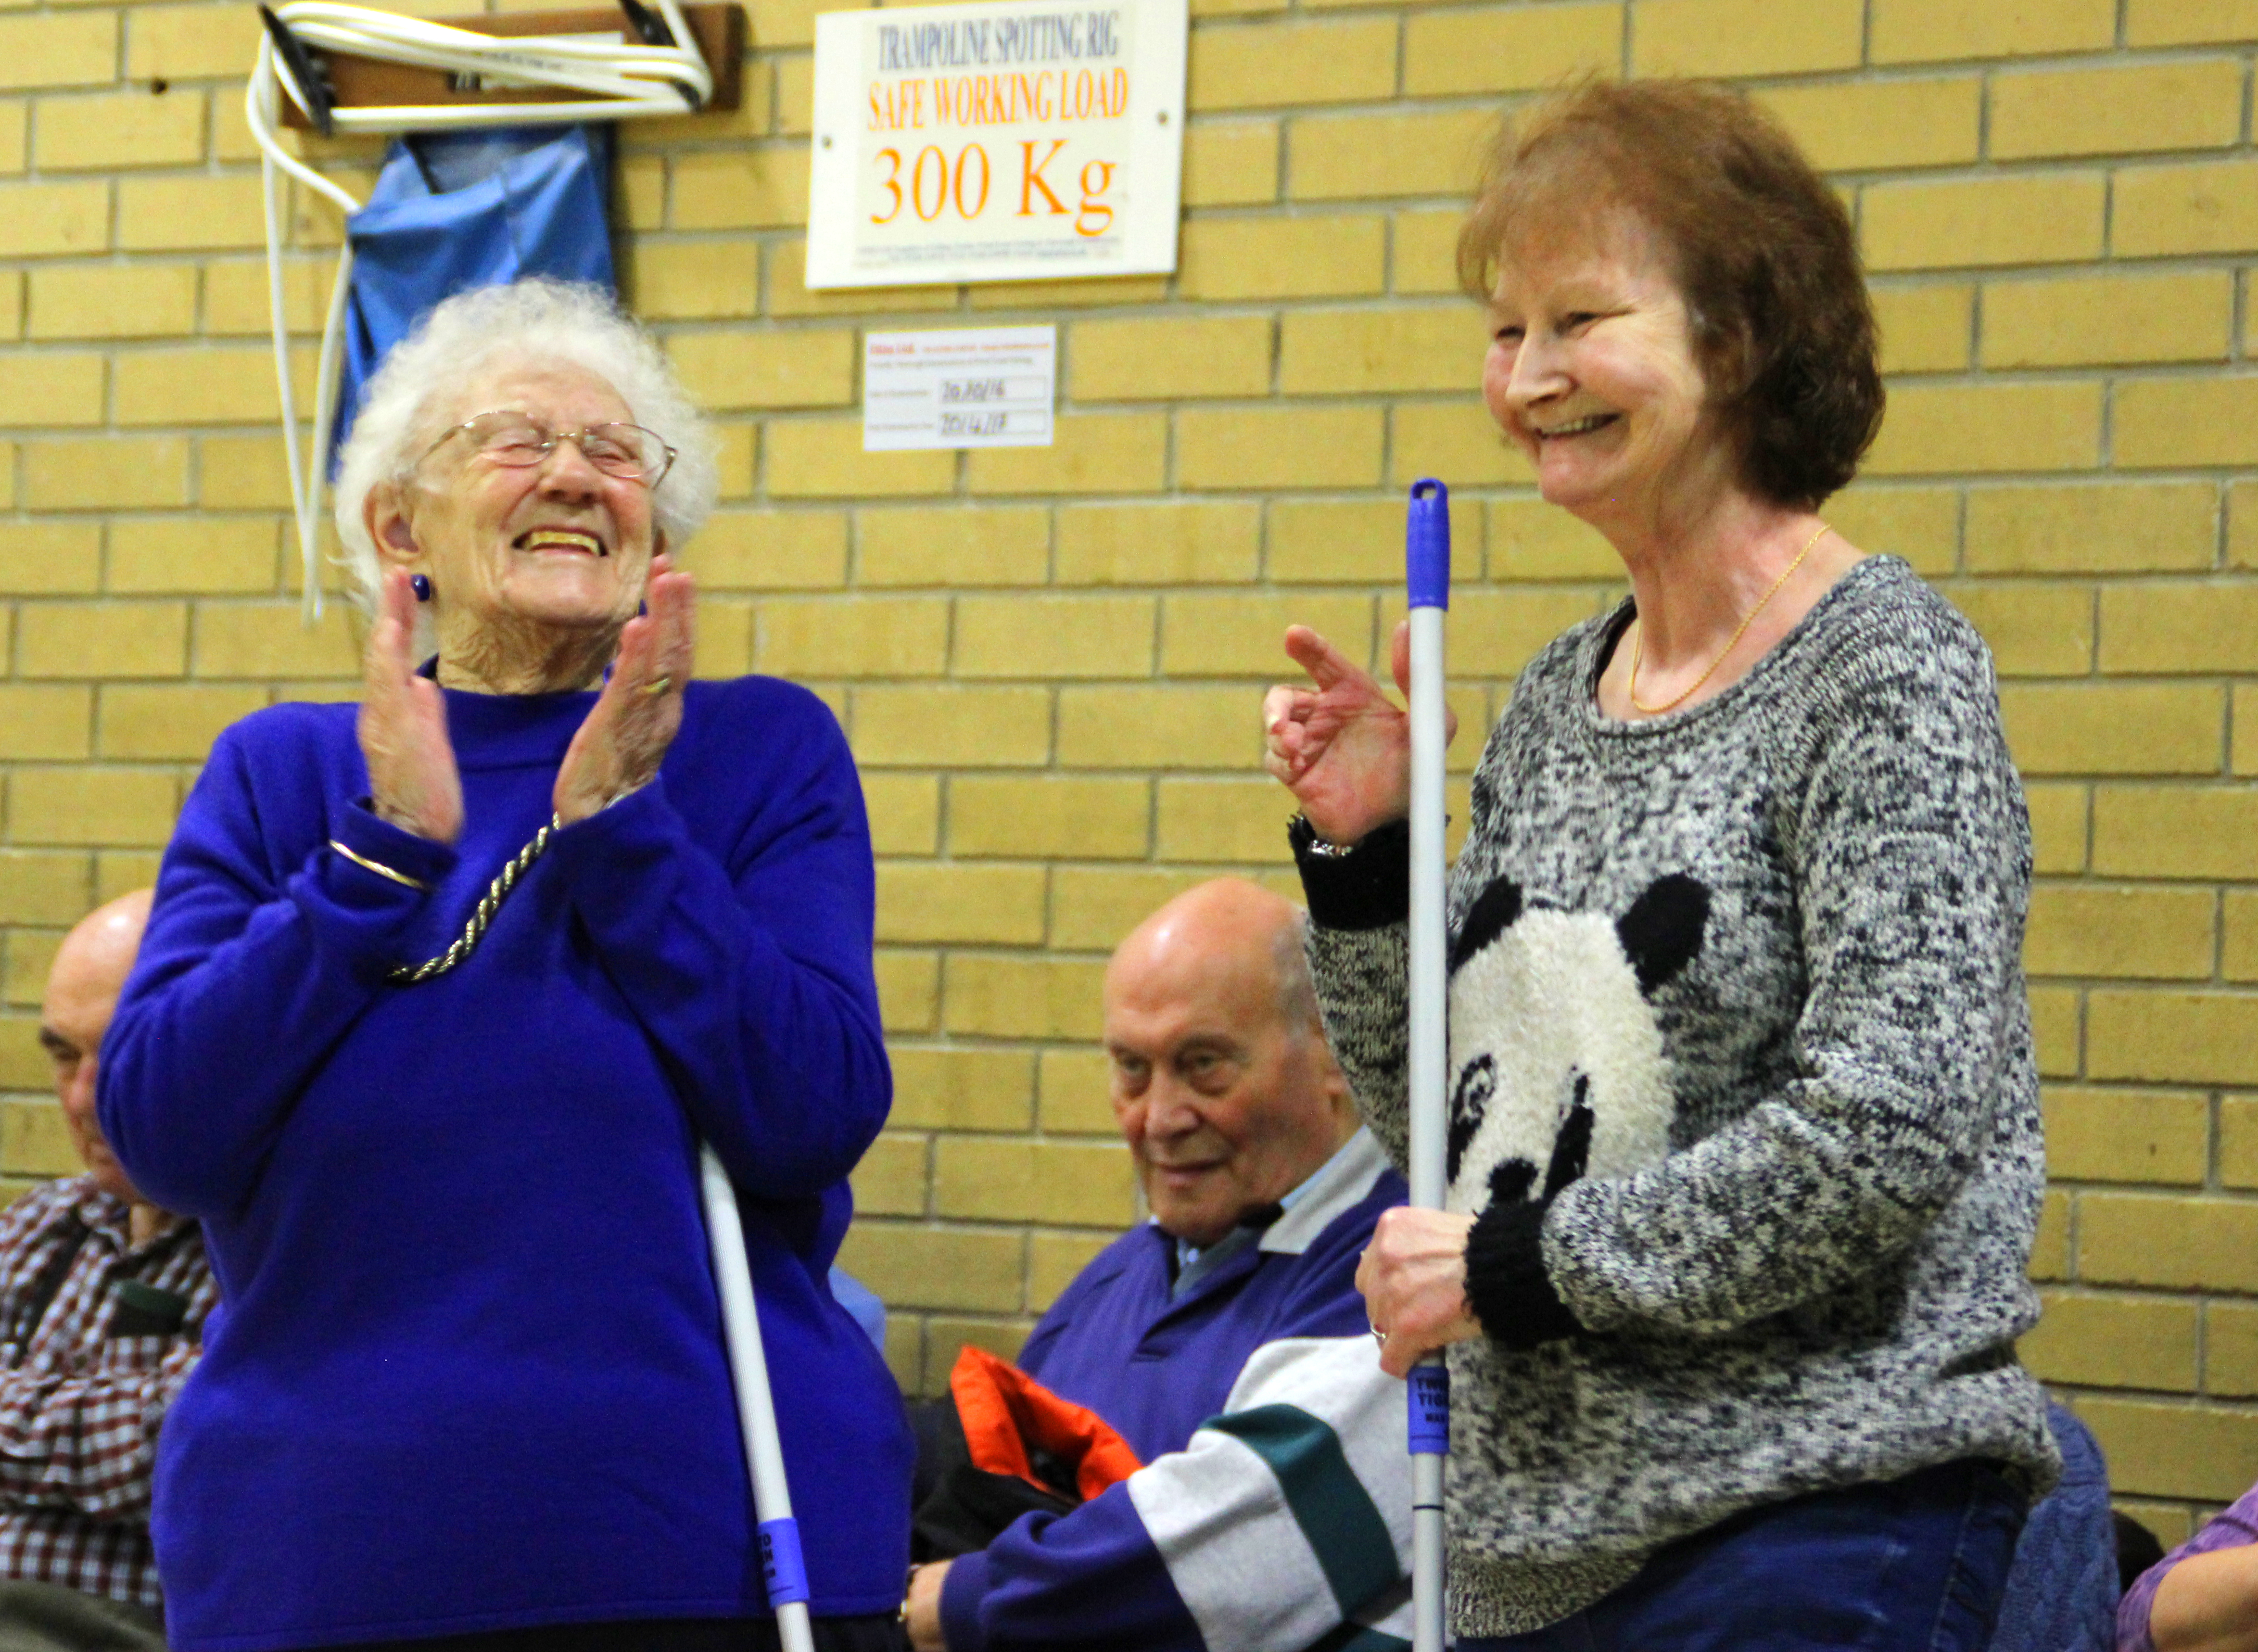 Kurling competitions help to get Ipswich active.